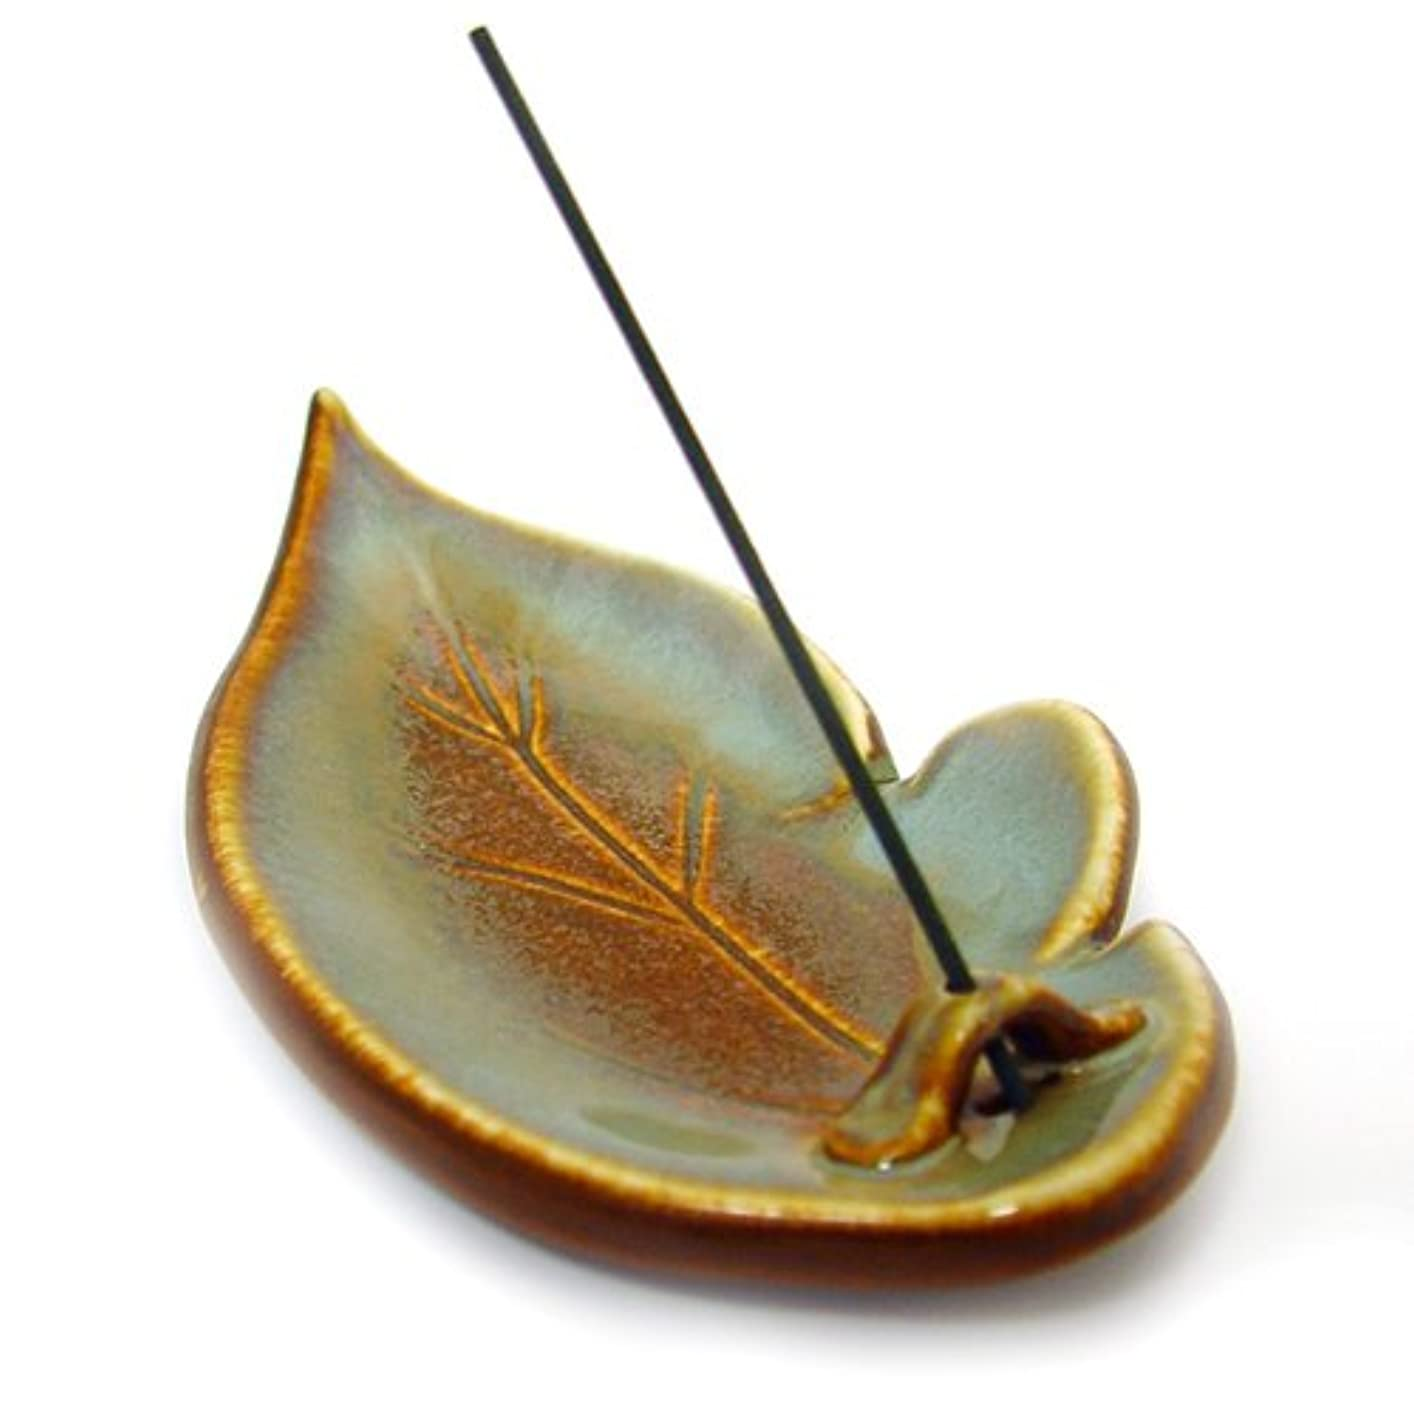 転倒キャップ書店Shoyeido's Desert Sage Ceramic Leaf Incense Holder by SHOYEIDO [並行輸入品]